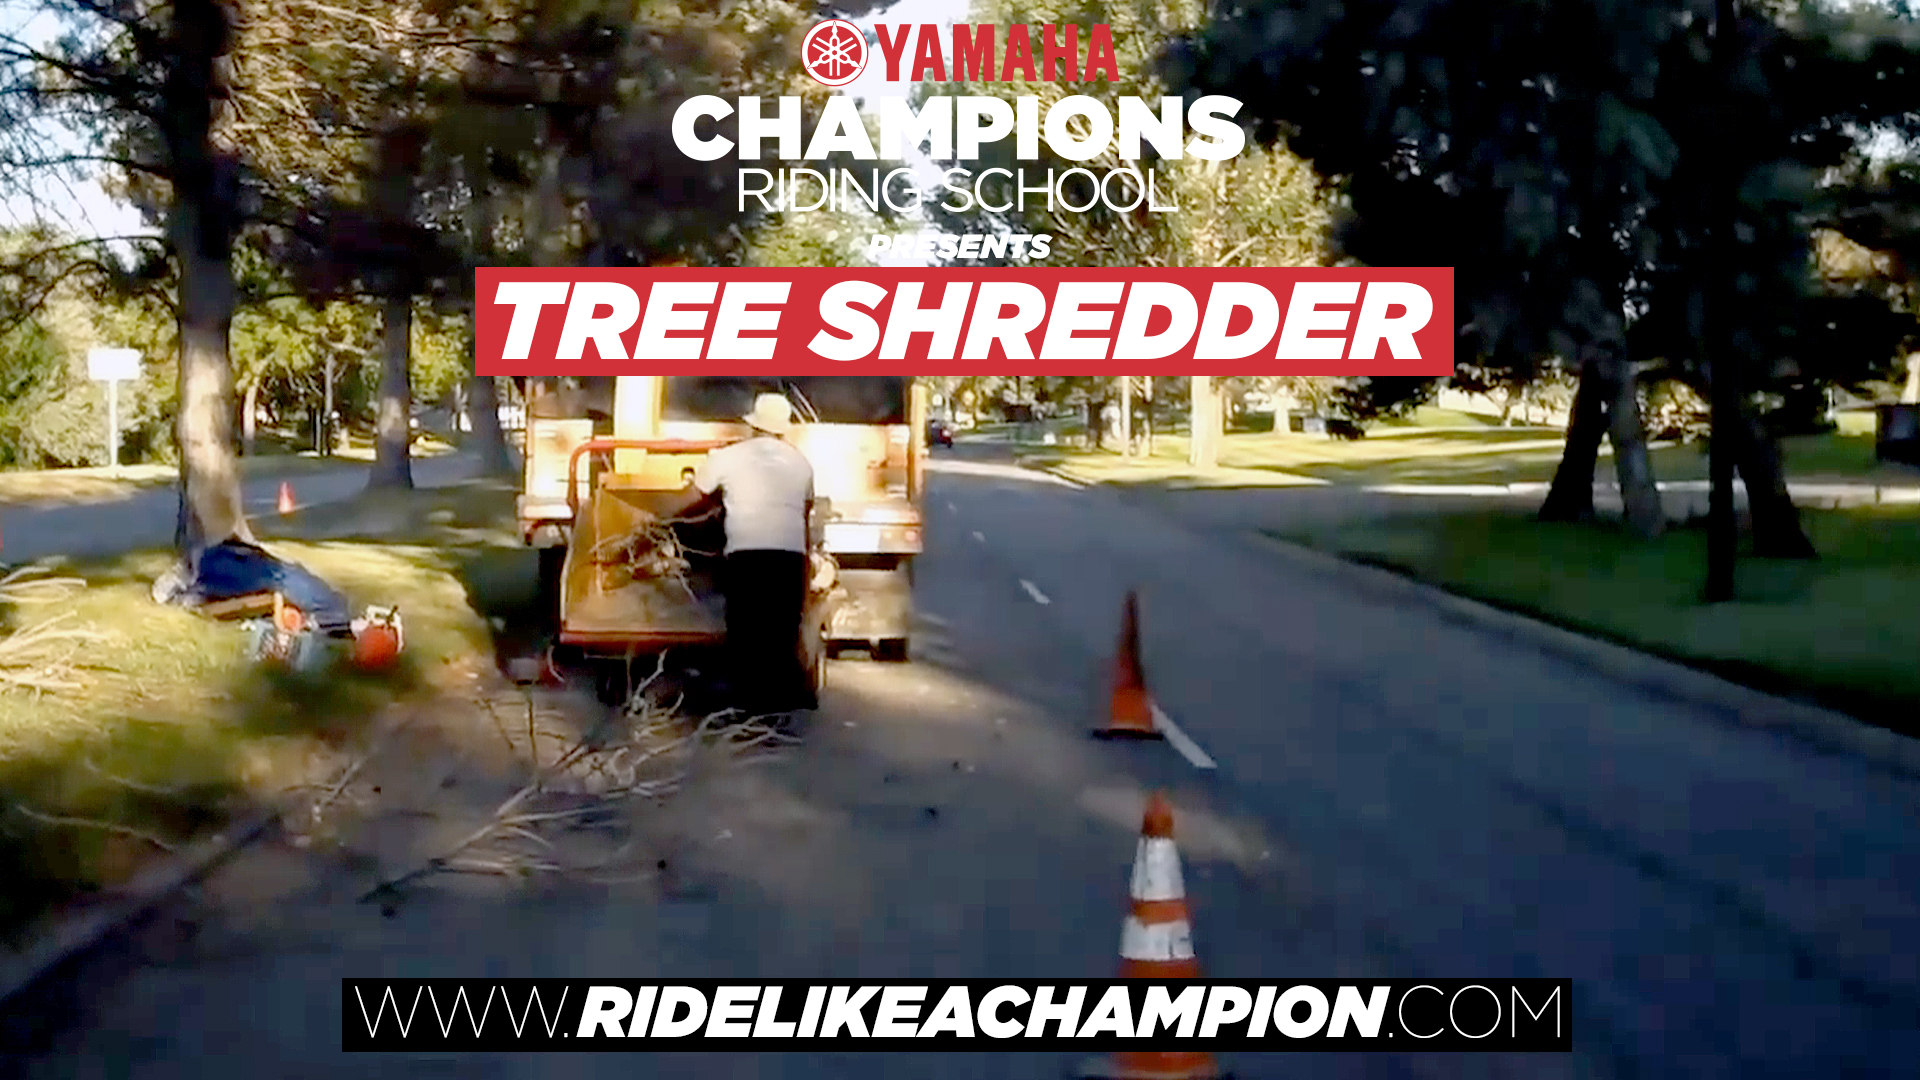 The Tree Shredder